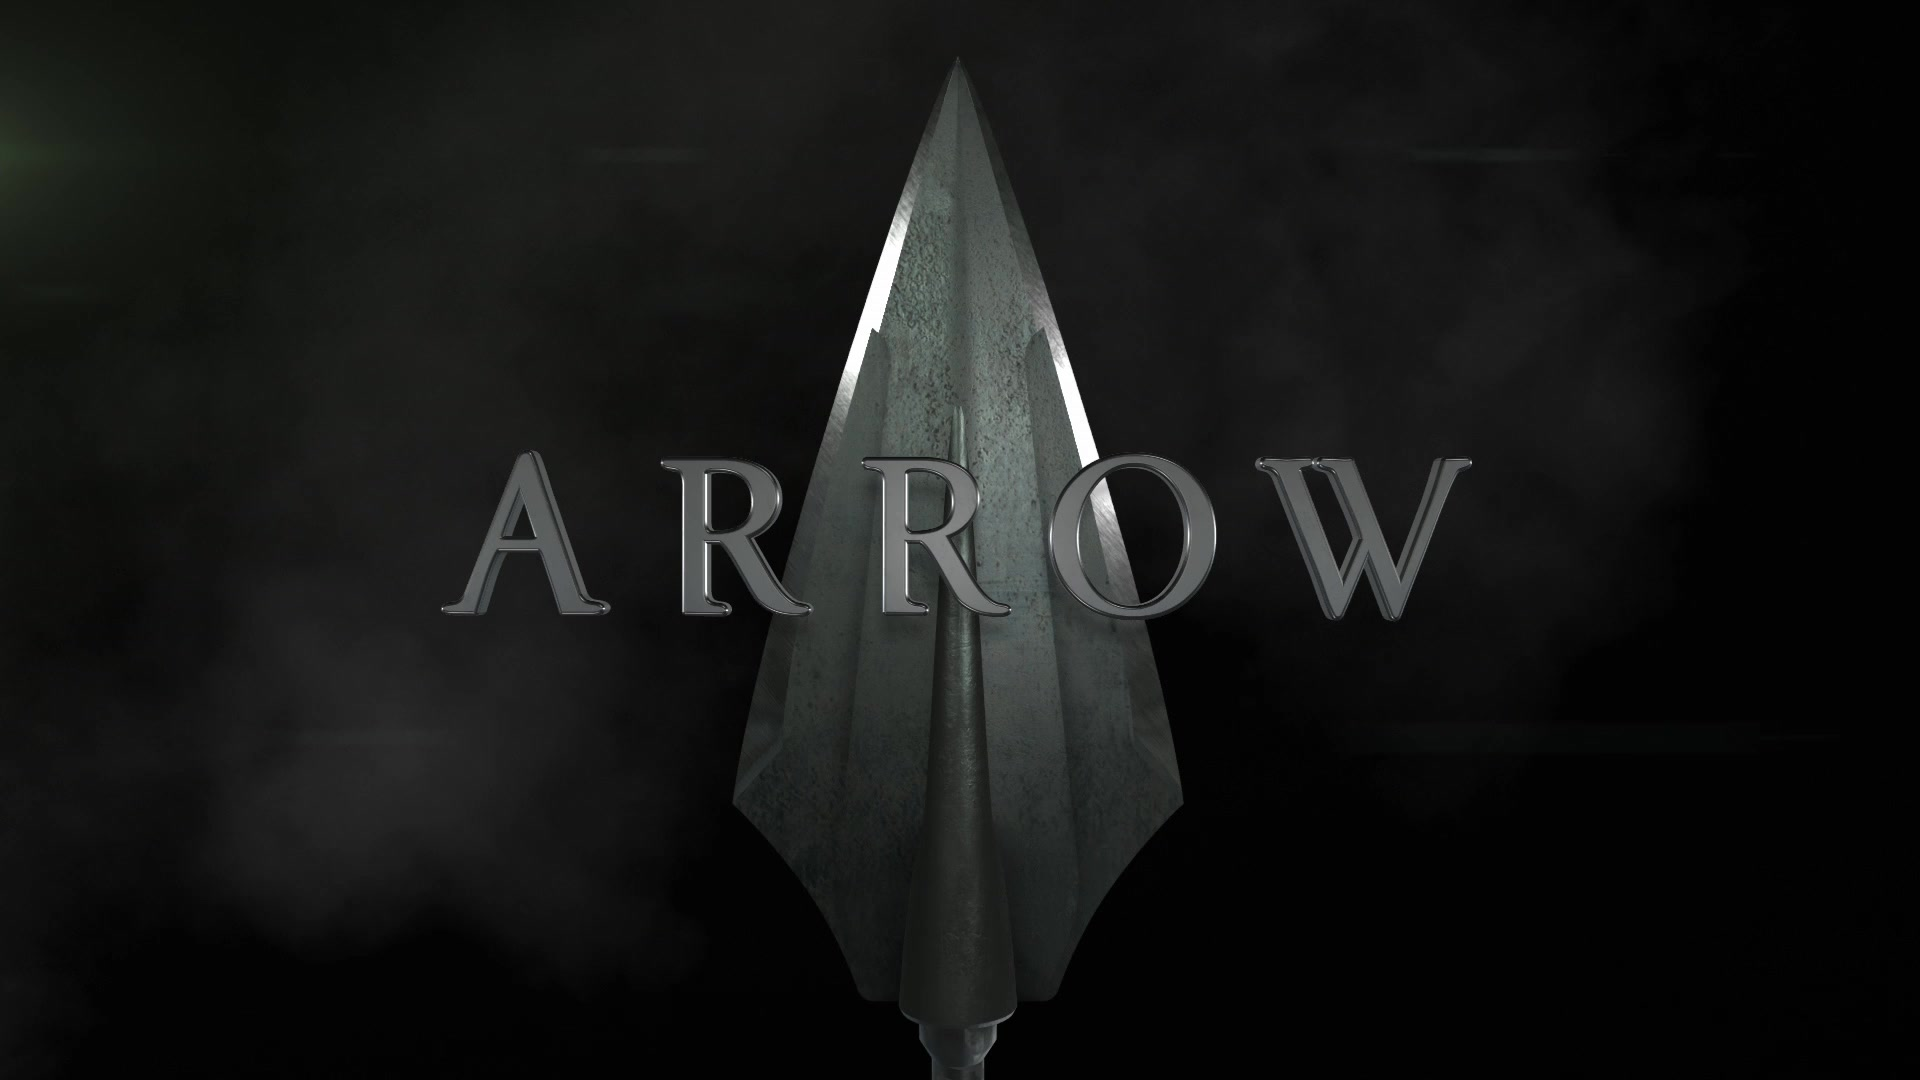 Arrow (TV Series) Episode: Star City Slayer